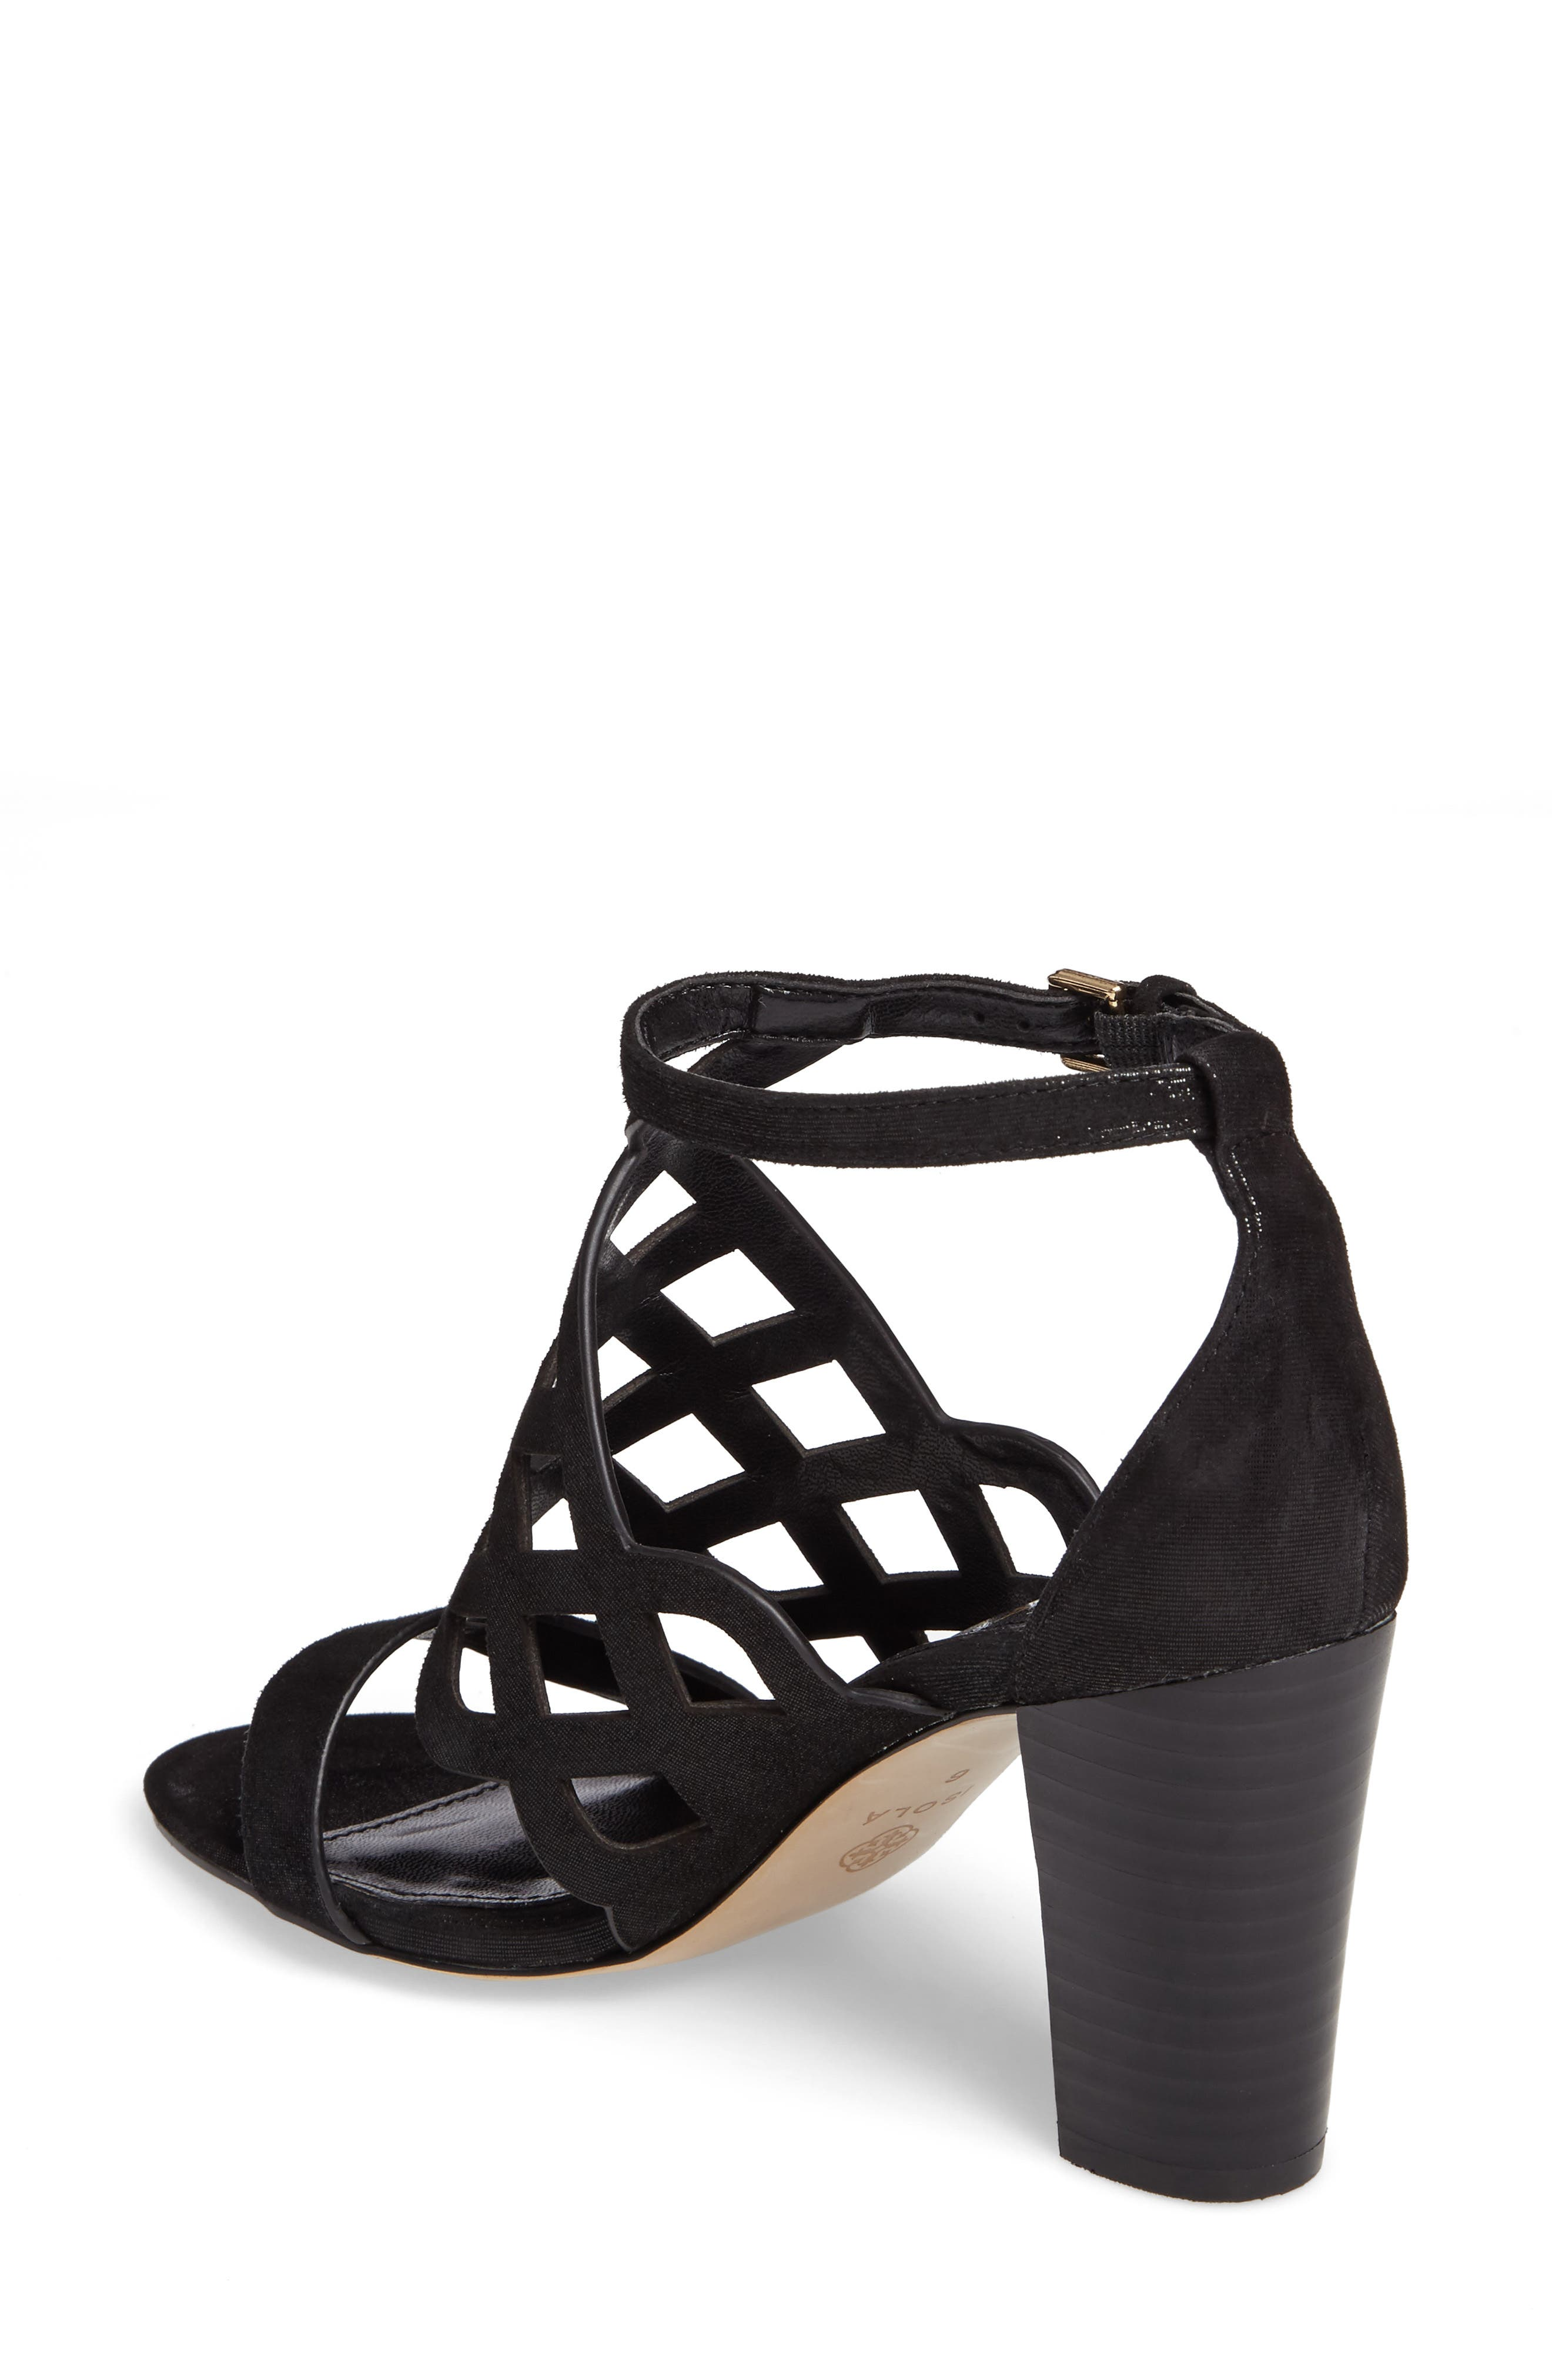 Despina Cutout Ankle Strap Sandal,                             Alternate thumbnail 2, color,                             001